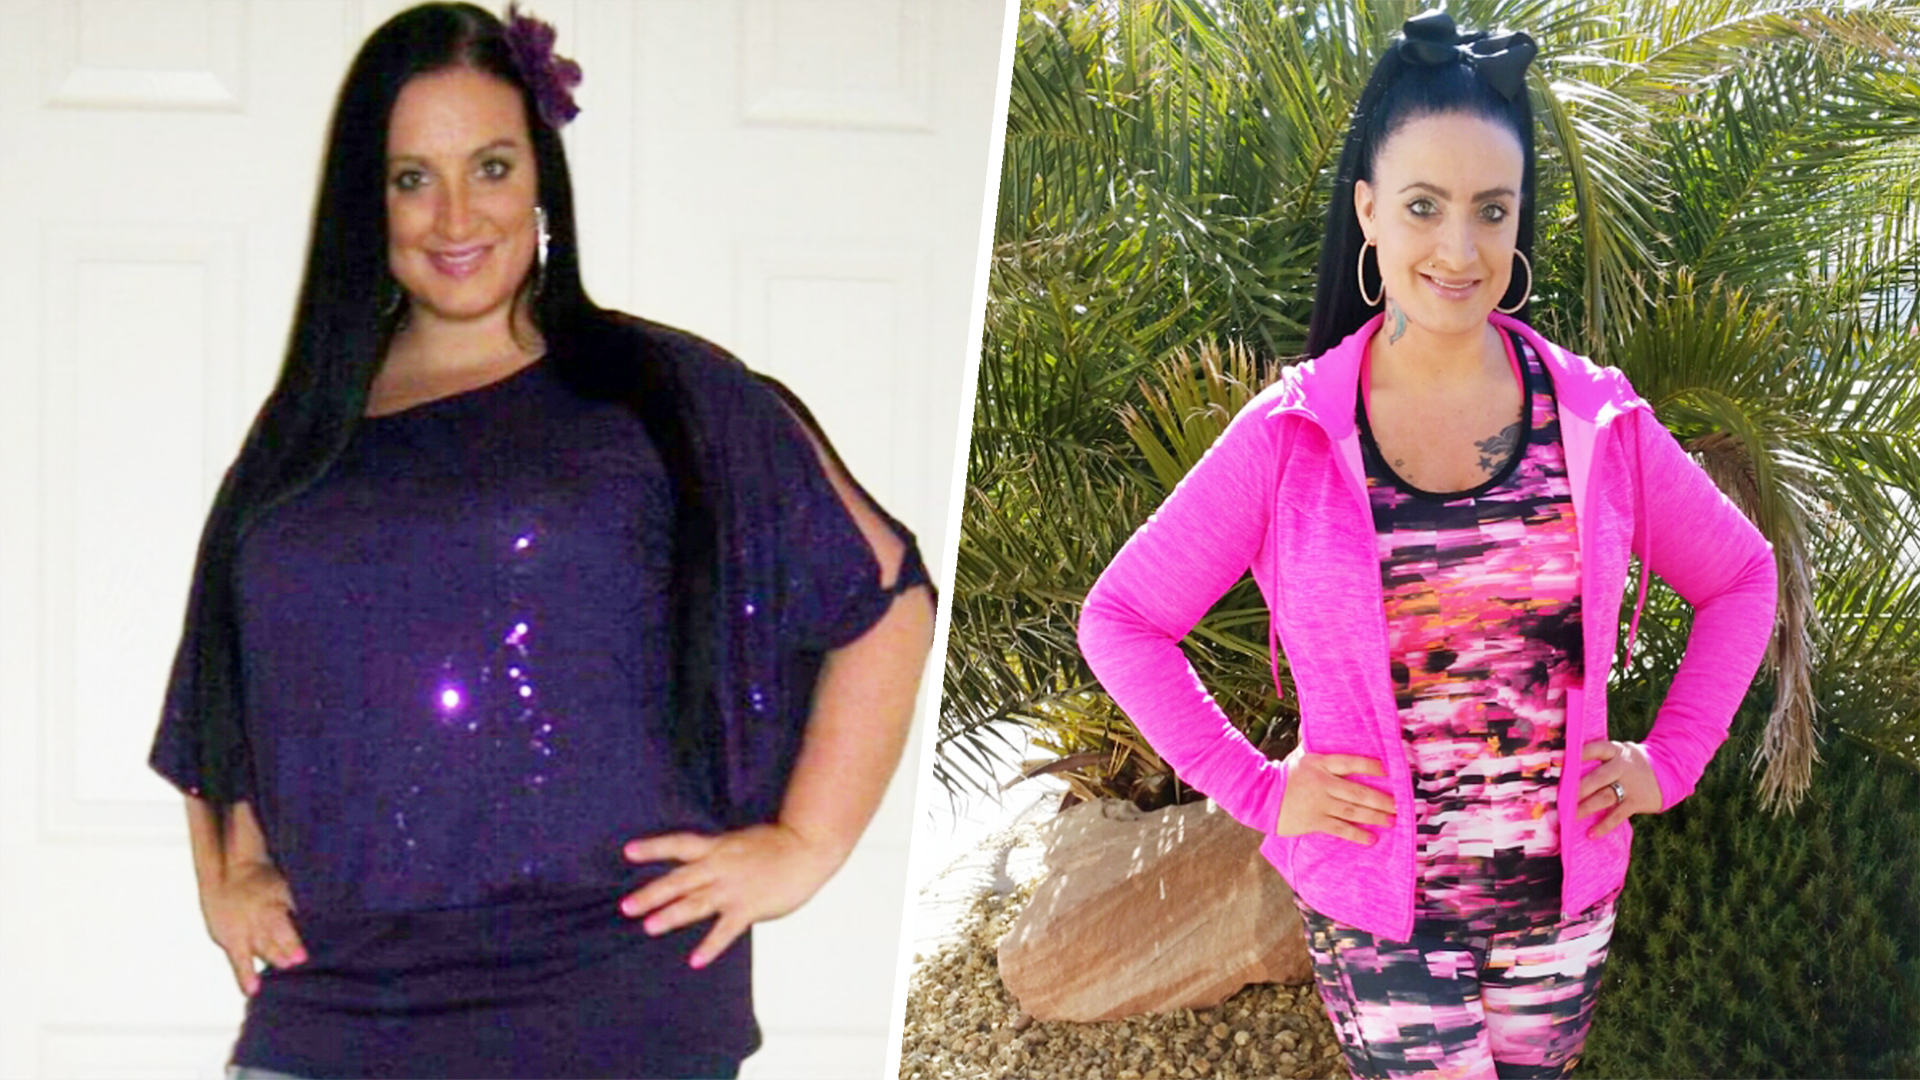 Walking 100,000 steps a week helps woman lose 80 pounds